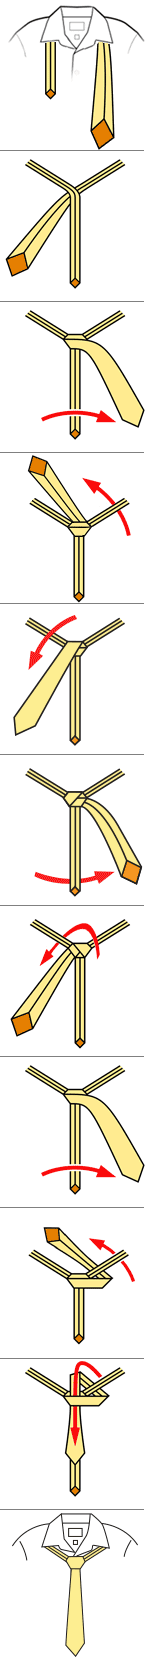 Hanover Knot Instructions